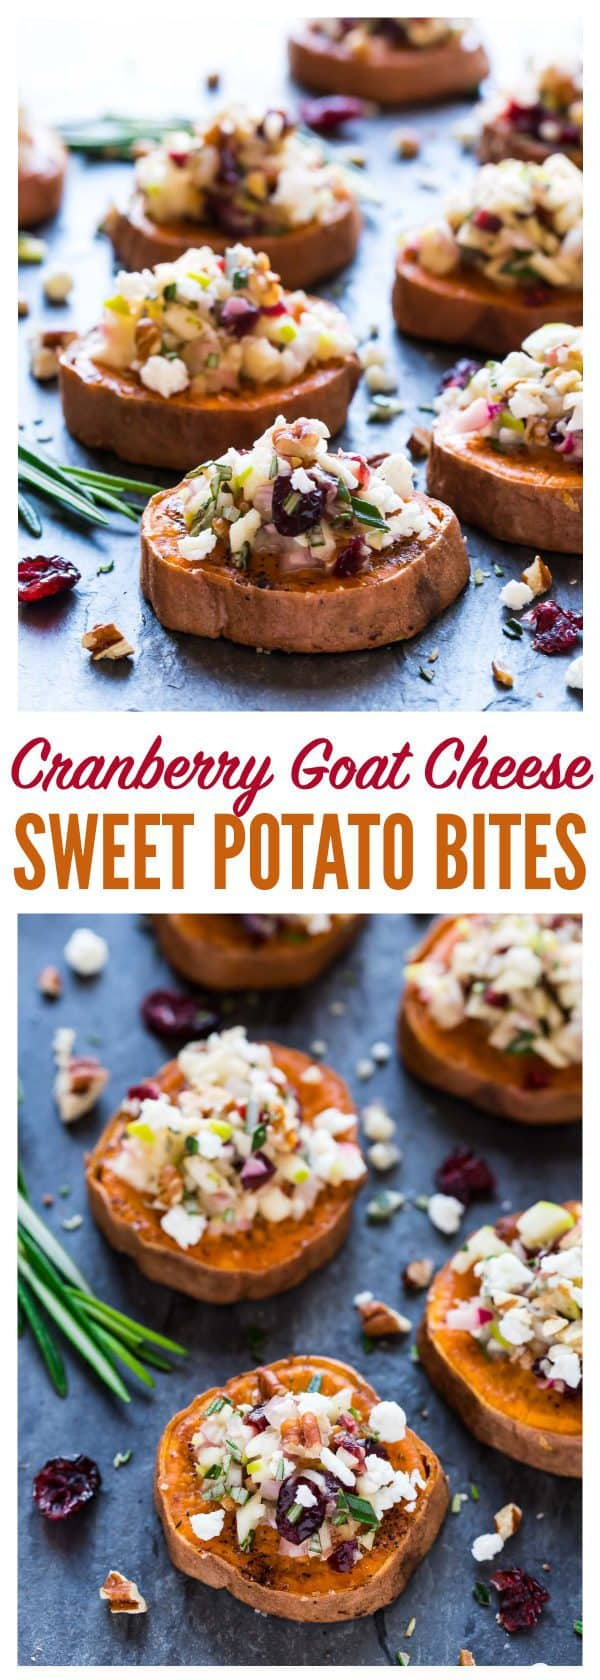 Baked Sweet Potato Rounds with Goat Cheese, Cranberry, Apple, and Pecans. An easy and addictive sweet potato appetizer! Healthy baked sweet potato slices roasted until crispy, then topped with a delicious combination of holiday flavors. Perfect easy appetizer for Thanksgiving, Christmas, and any party! #appetizer